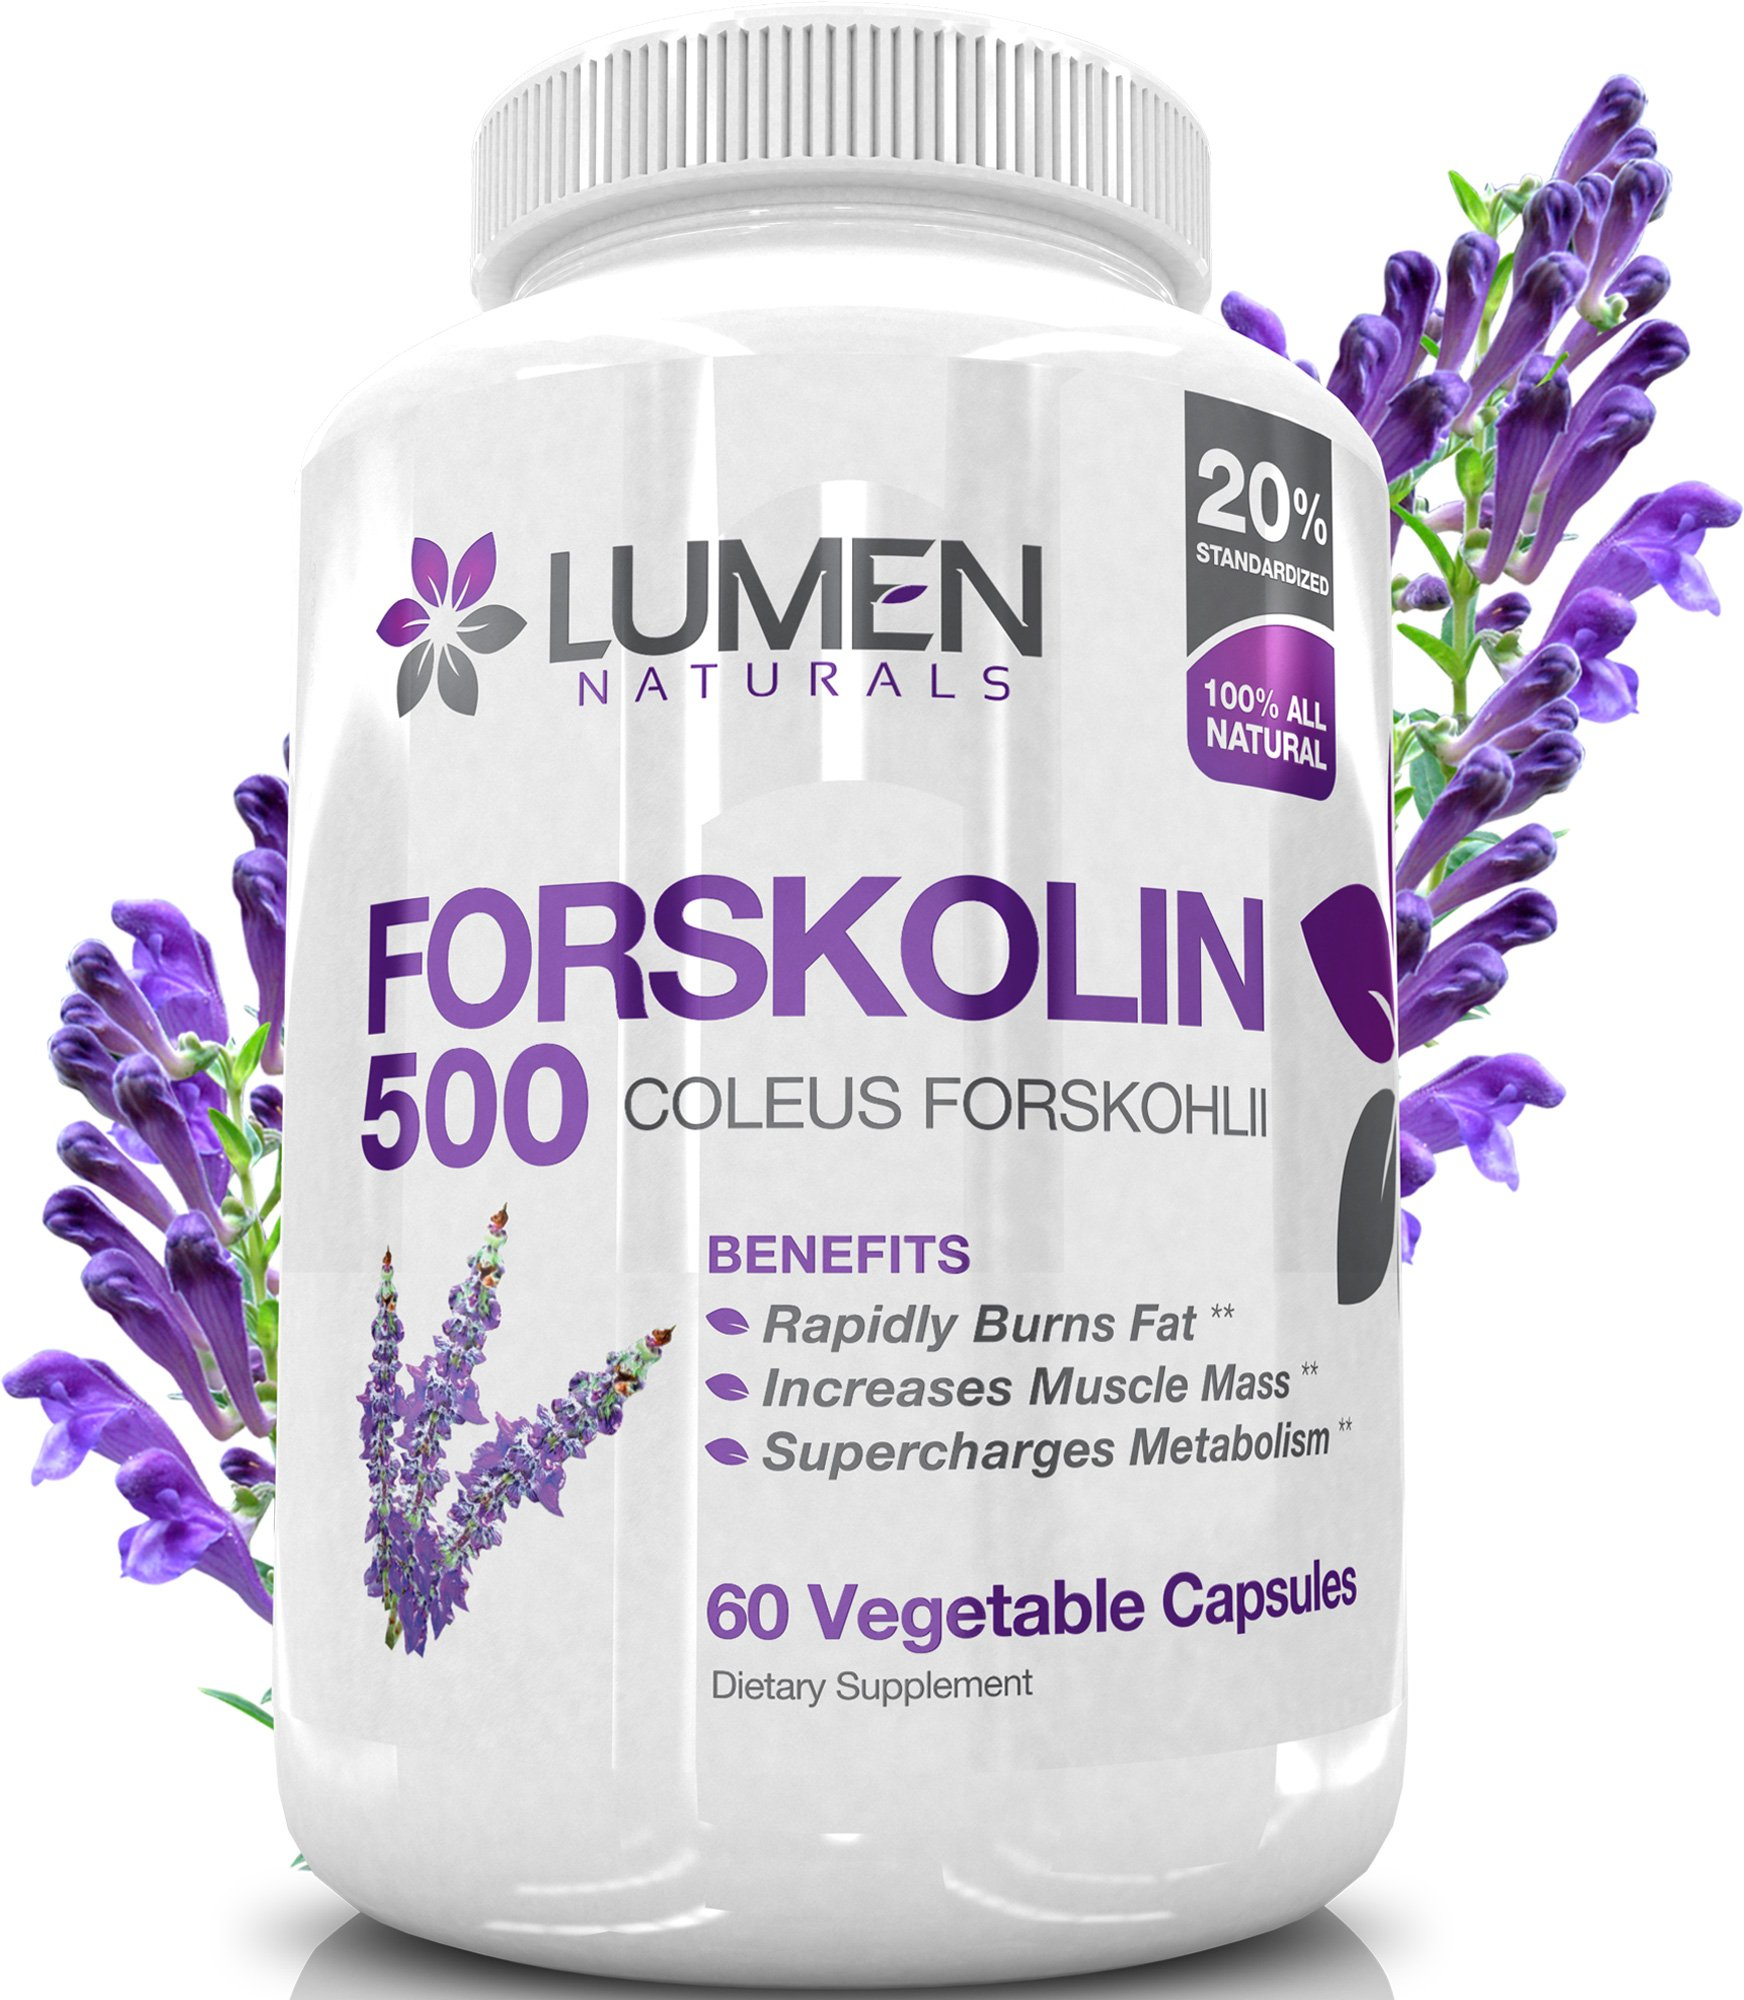 Pure Forskolin Extract 500mg - 2X Strength 20% Standardized Fat Burner - Natural Coleus Forskohlii Appetite Suppressant Verified by Research - 60 Capsules